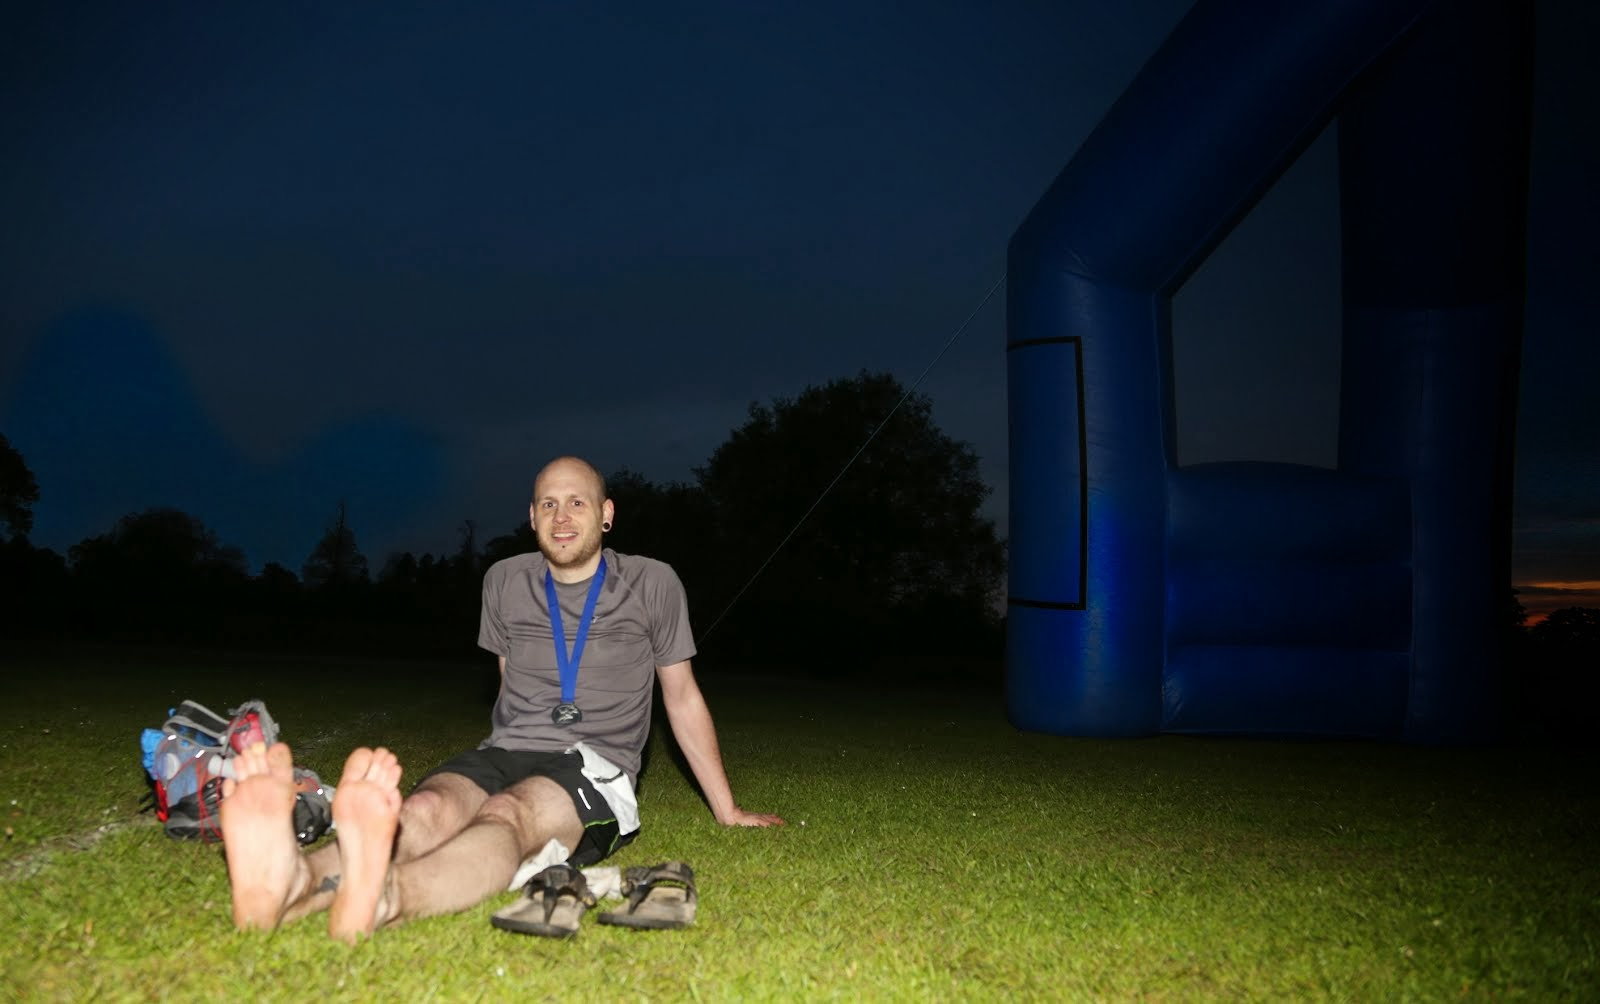 At the finish of the NDW50